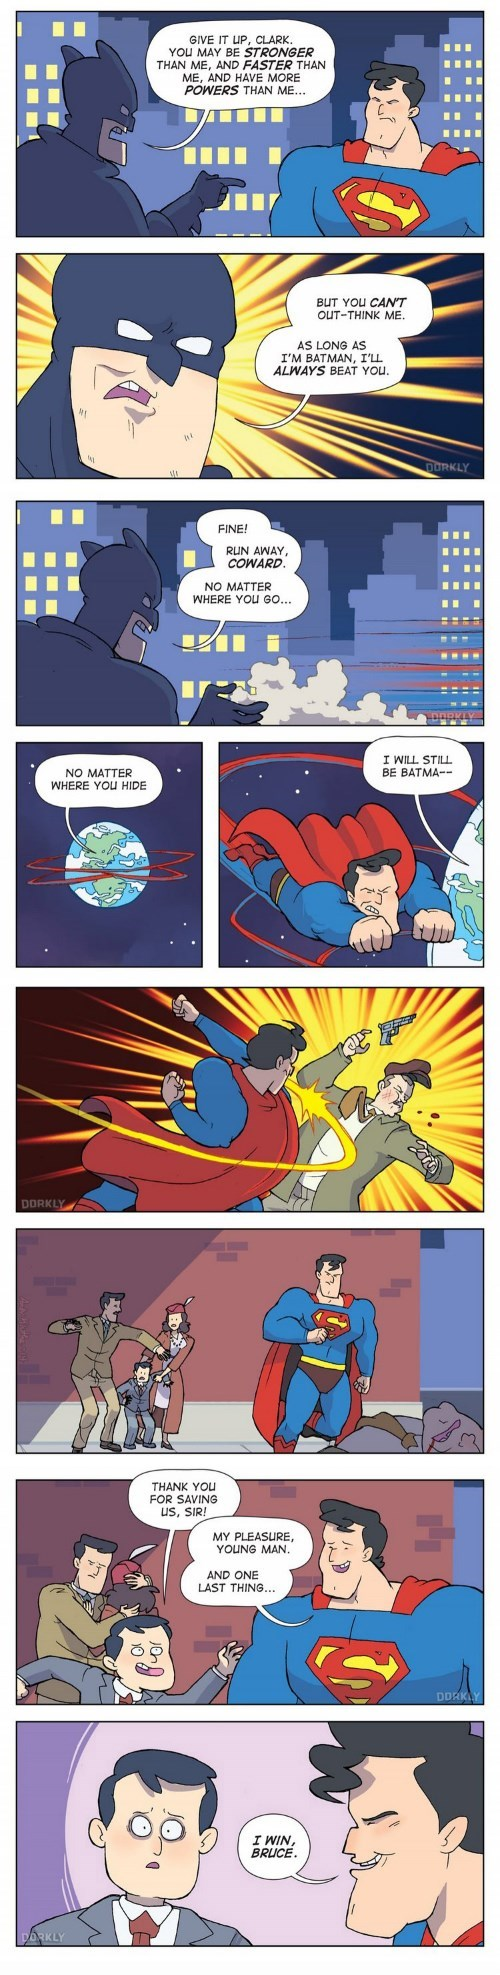 Batman v Superman time travel web comics - 8276267008